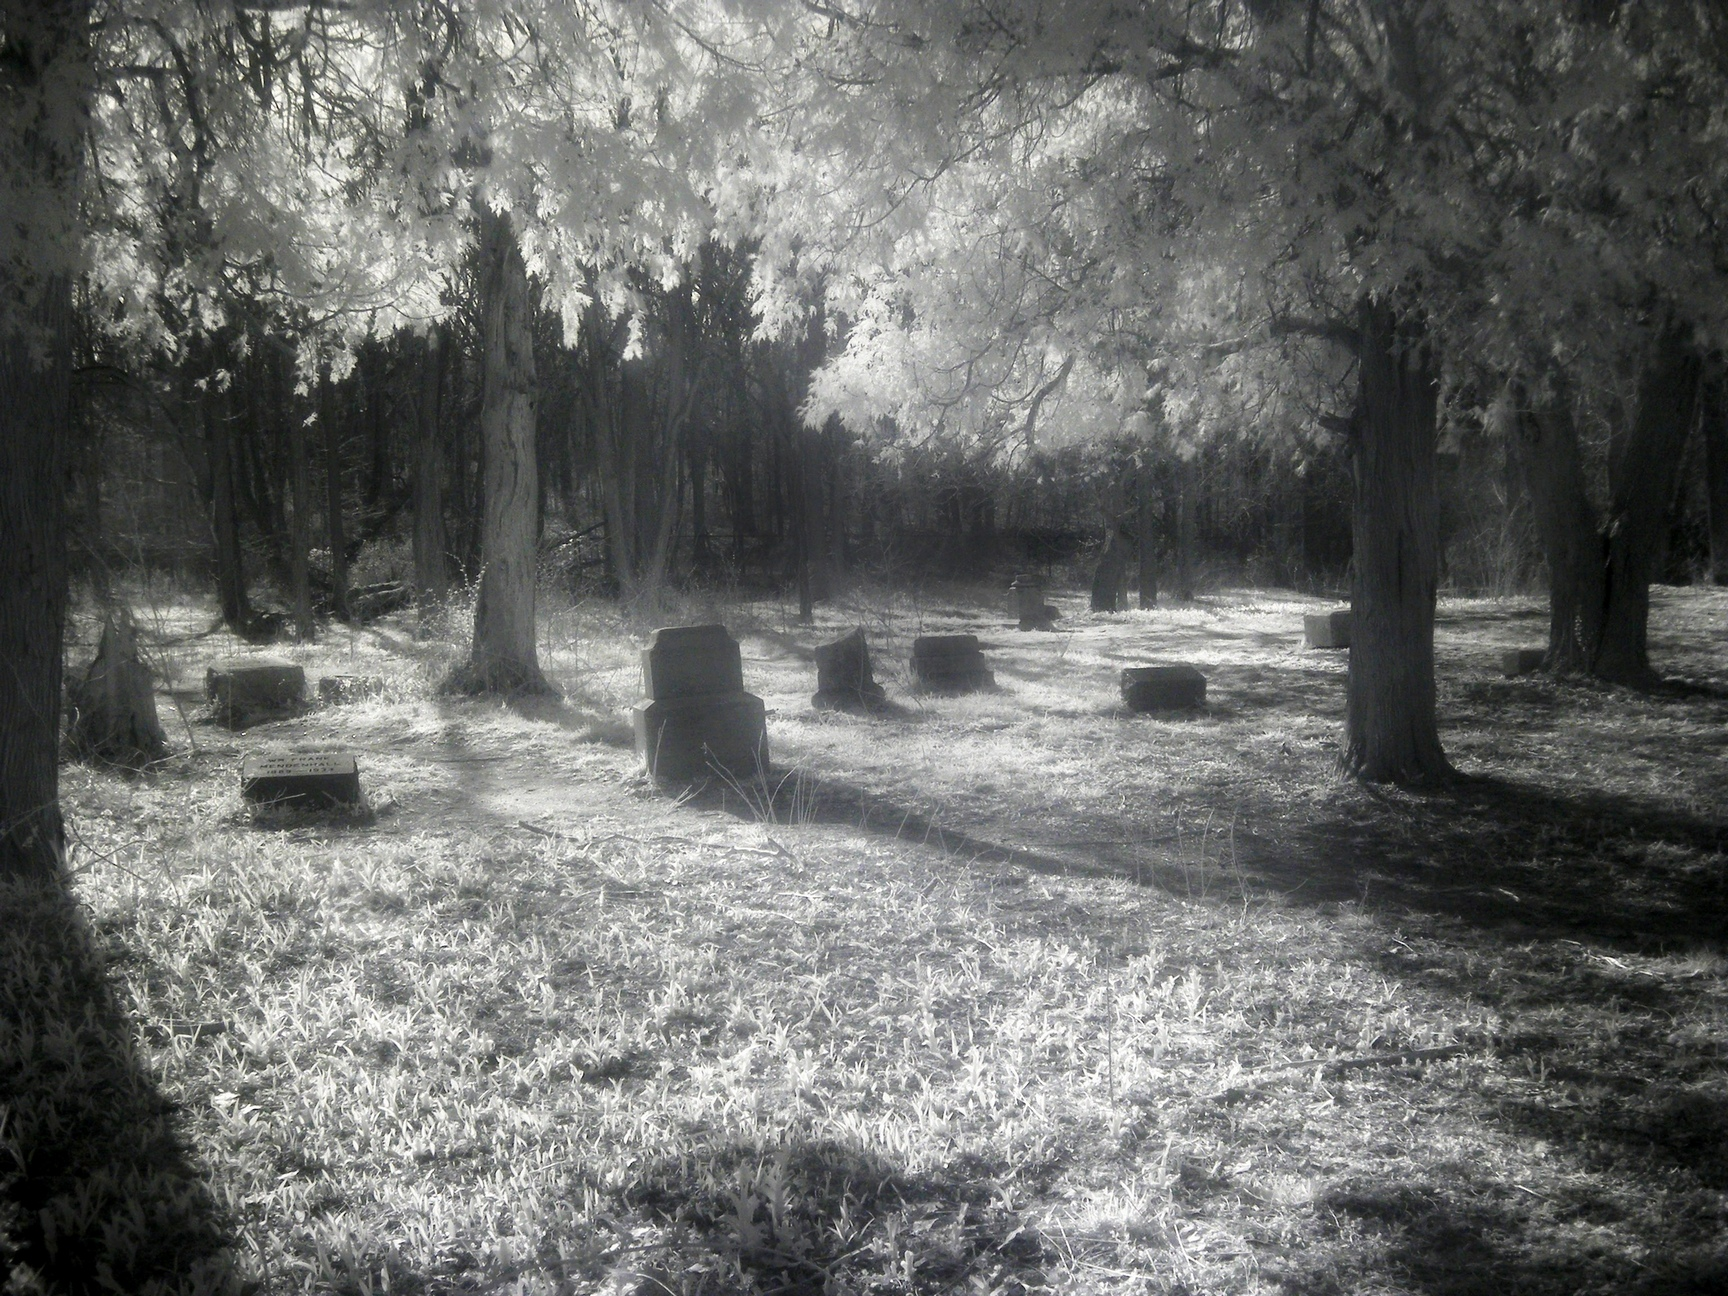 An eerie image of a forest with tombstones taken at Bachelors Grove Cemetery